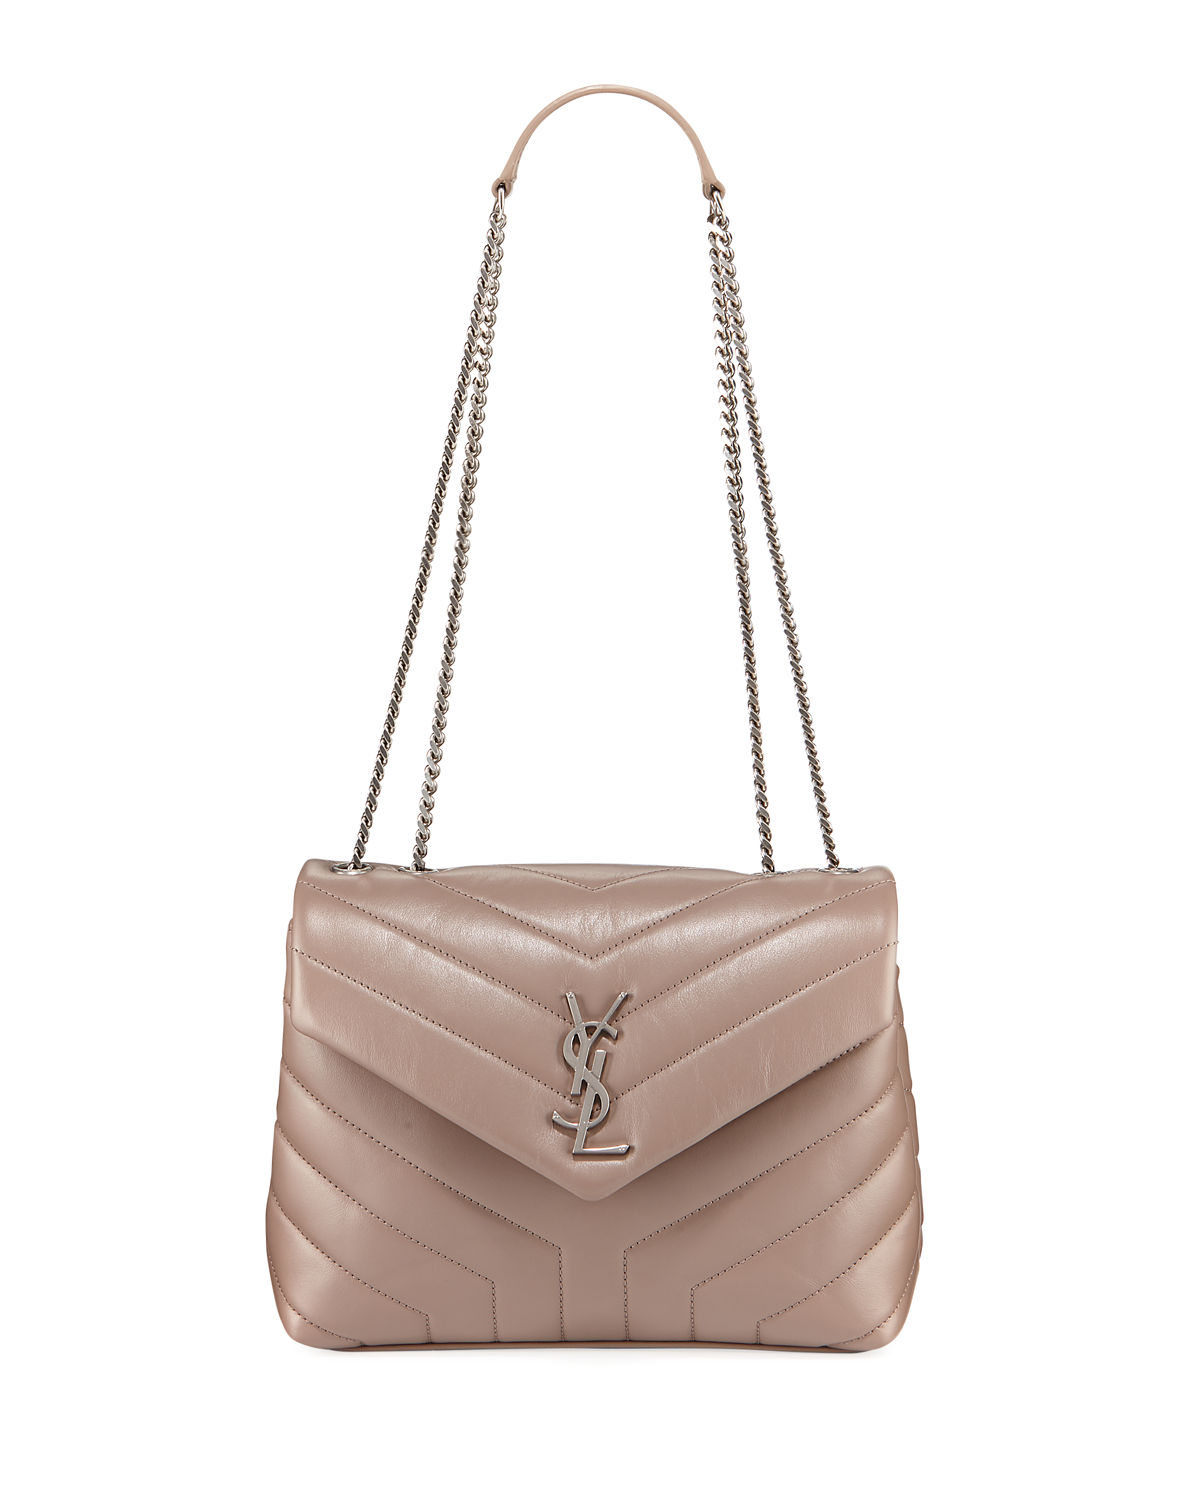 Loulou Monogram YSL Small Chain Bag